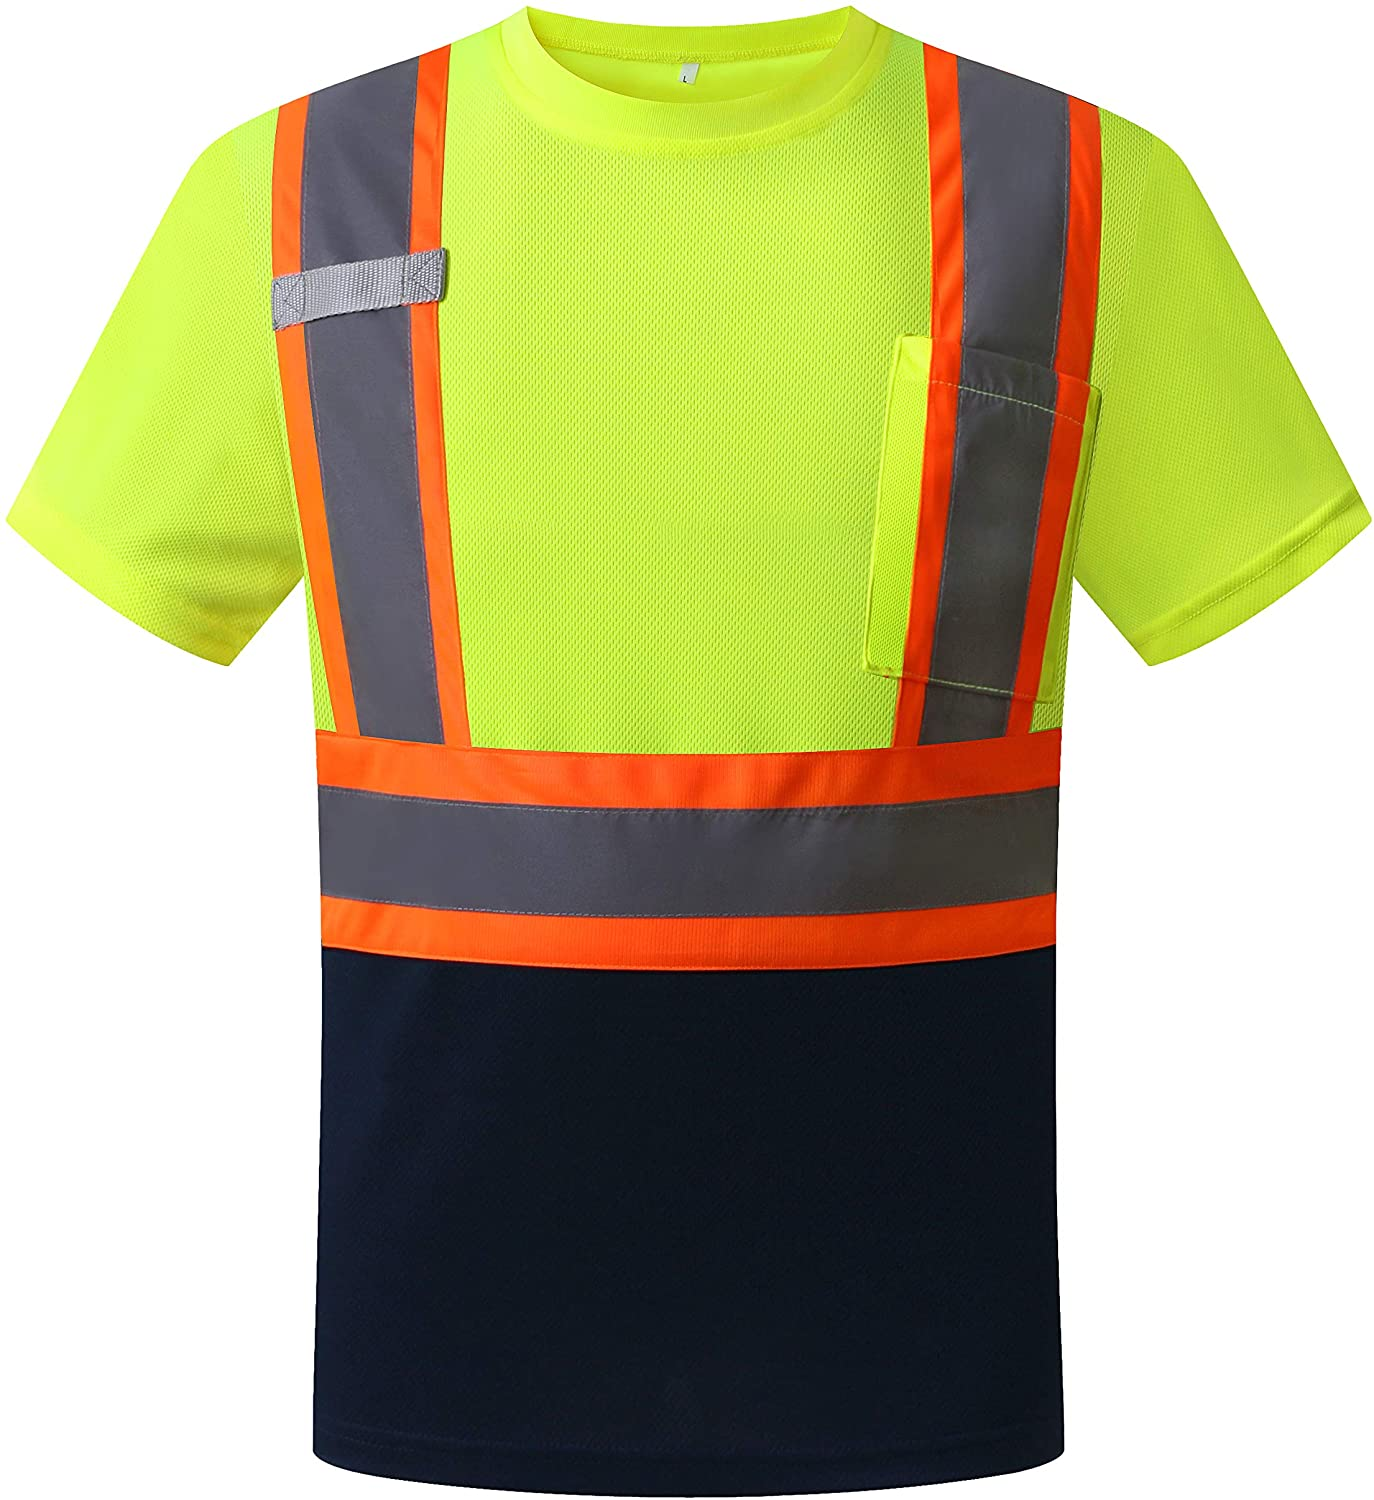 LOHASPRO Safety Shirt High Visibility - Reflective Polo Shirt Short Sleeve for Men and Women - ANSI/ISEA Standards (3X-Large, Green black)